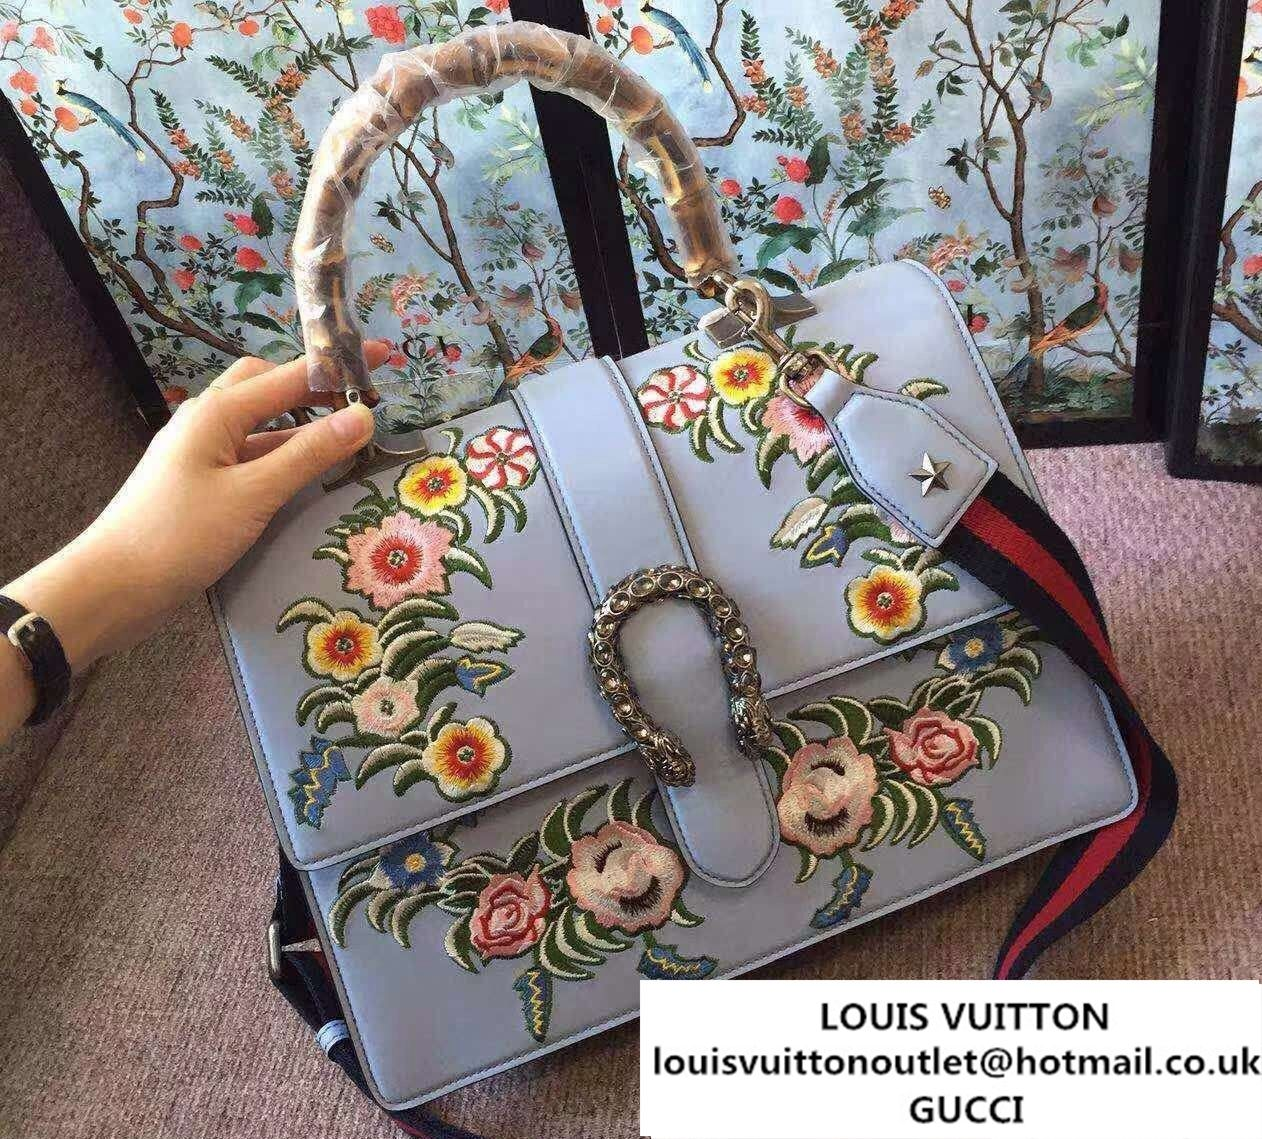 efabbd3c0c1 Gucci Dionysus Leather Embroidered Flowers Top Handle Large Bag 421999 2016